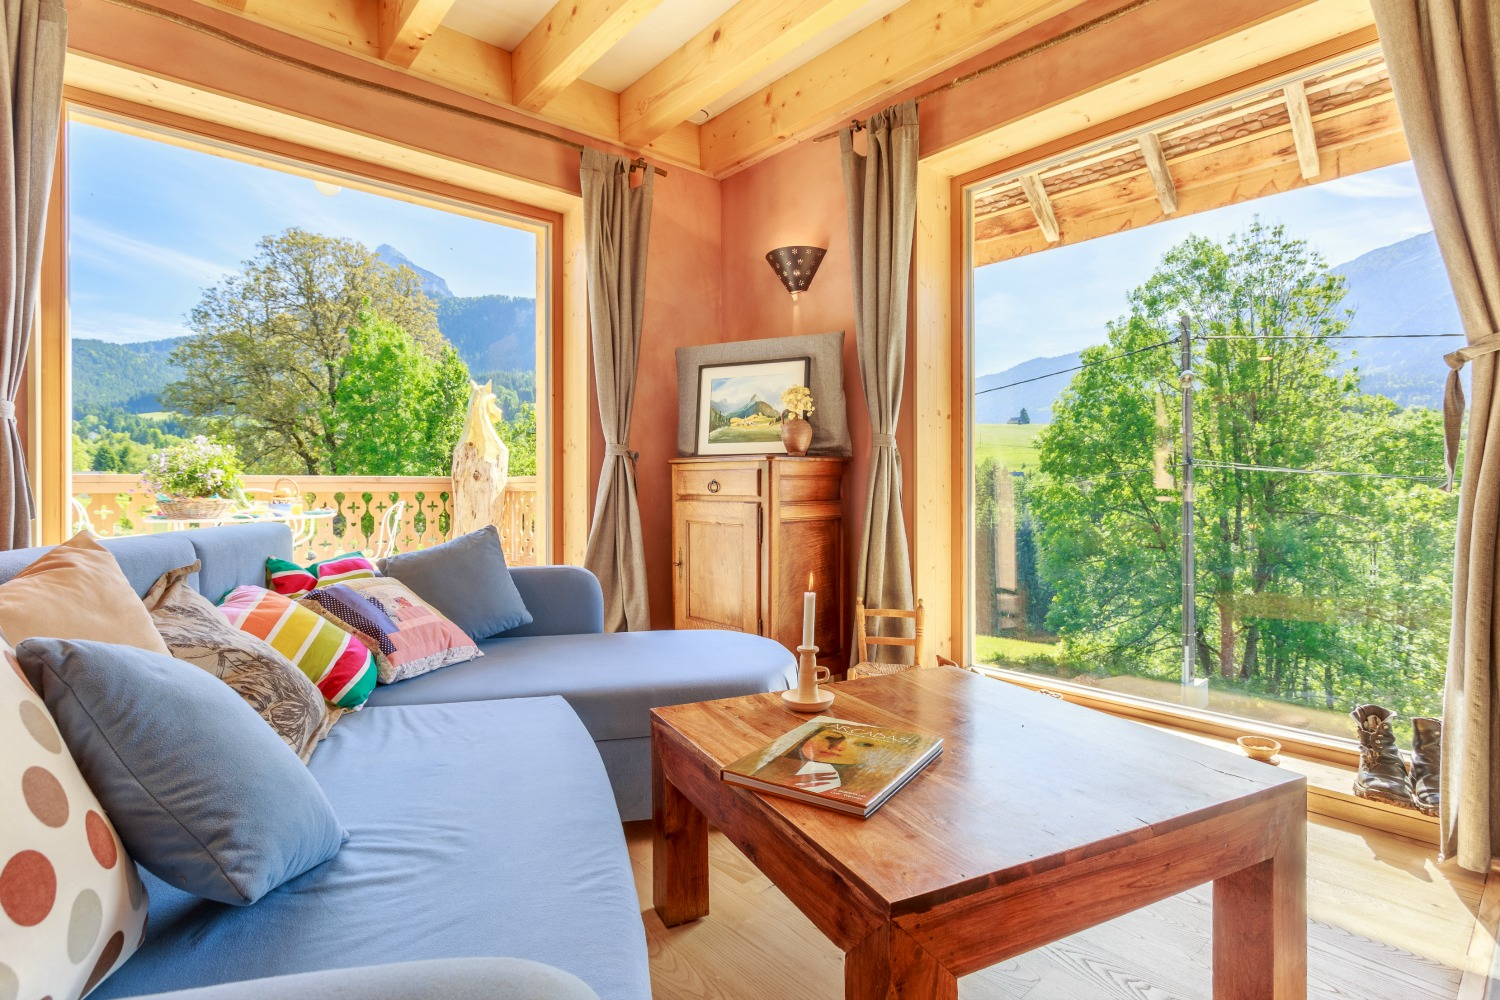 Gite-rural-Holiday-Alps-Ferienhaus-Alpen